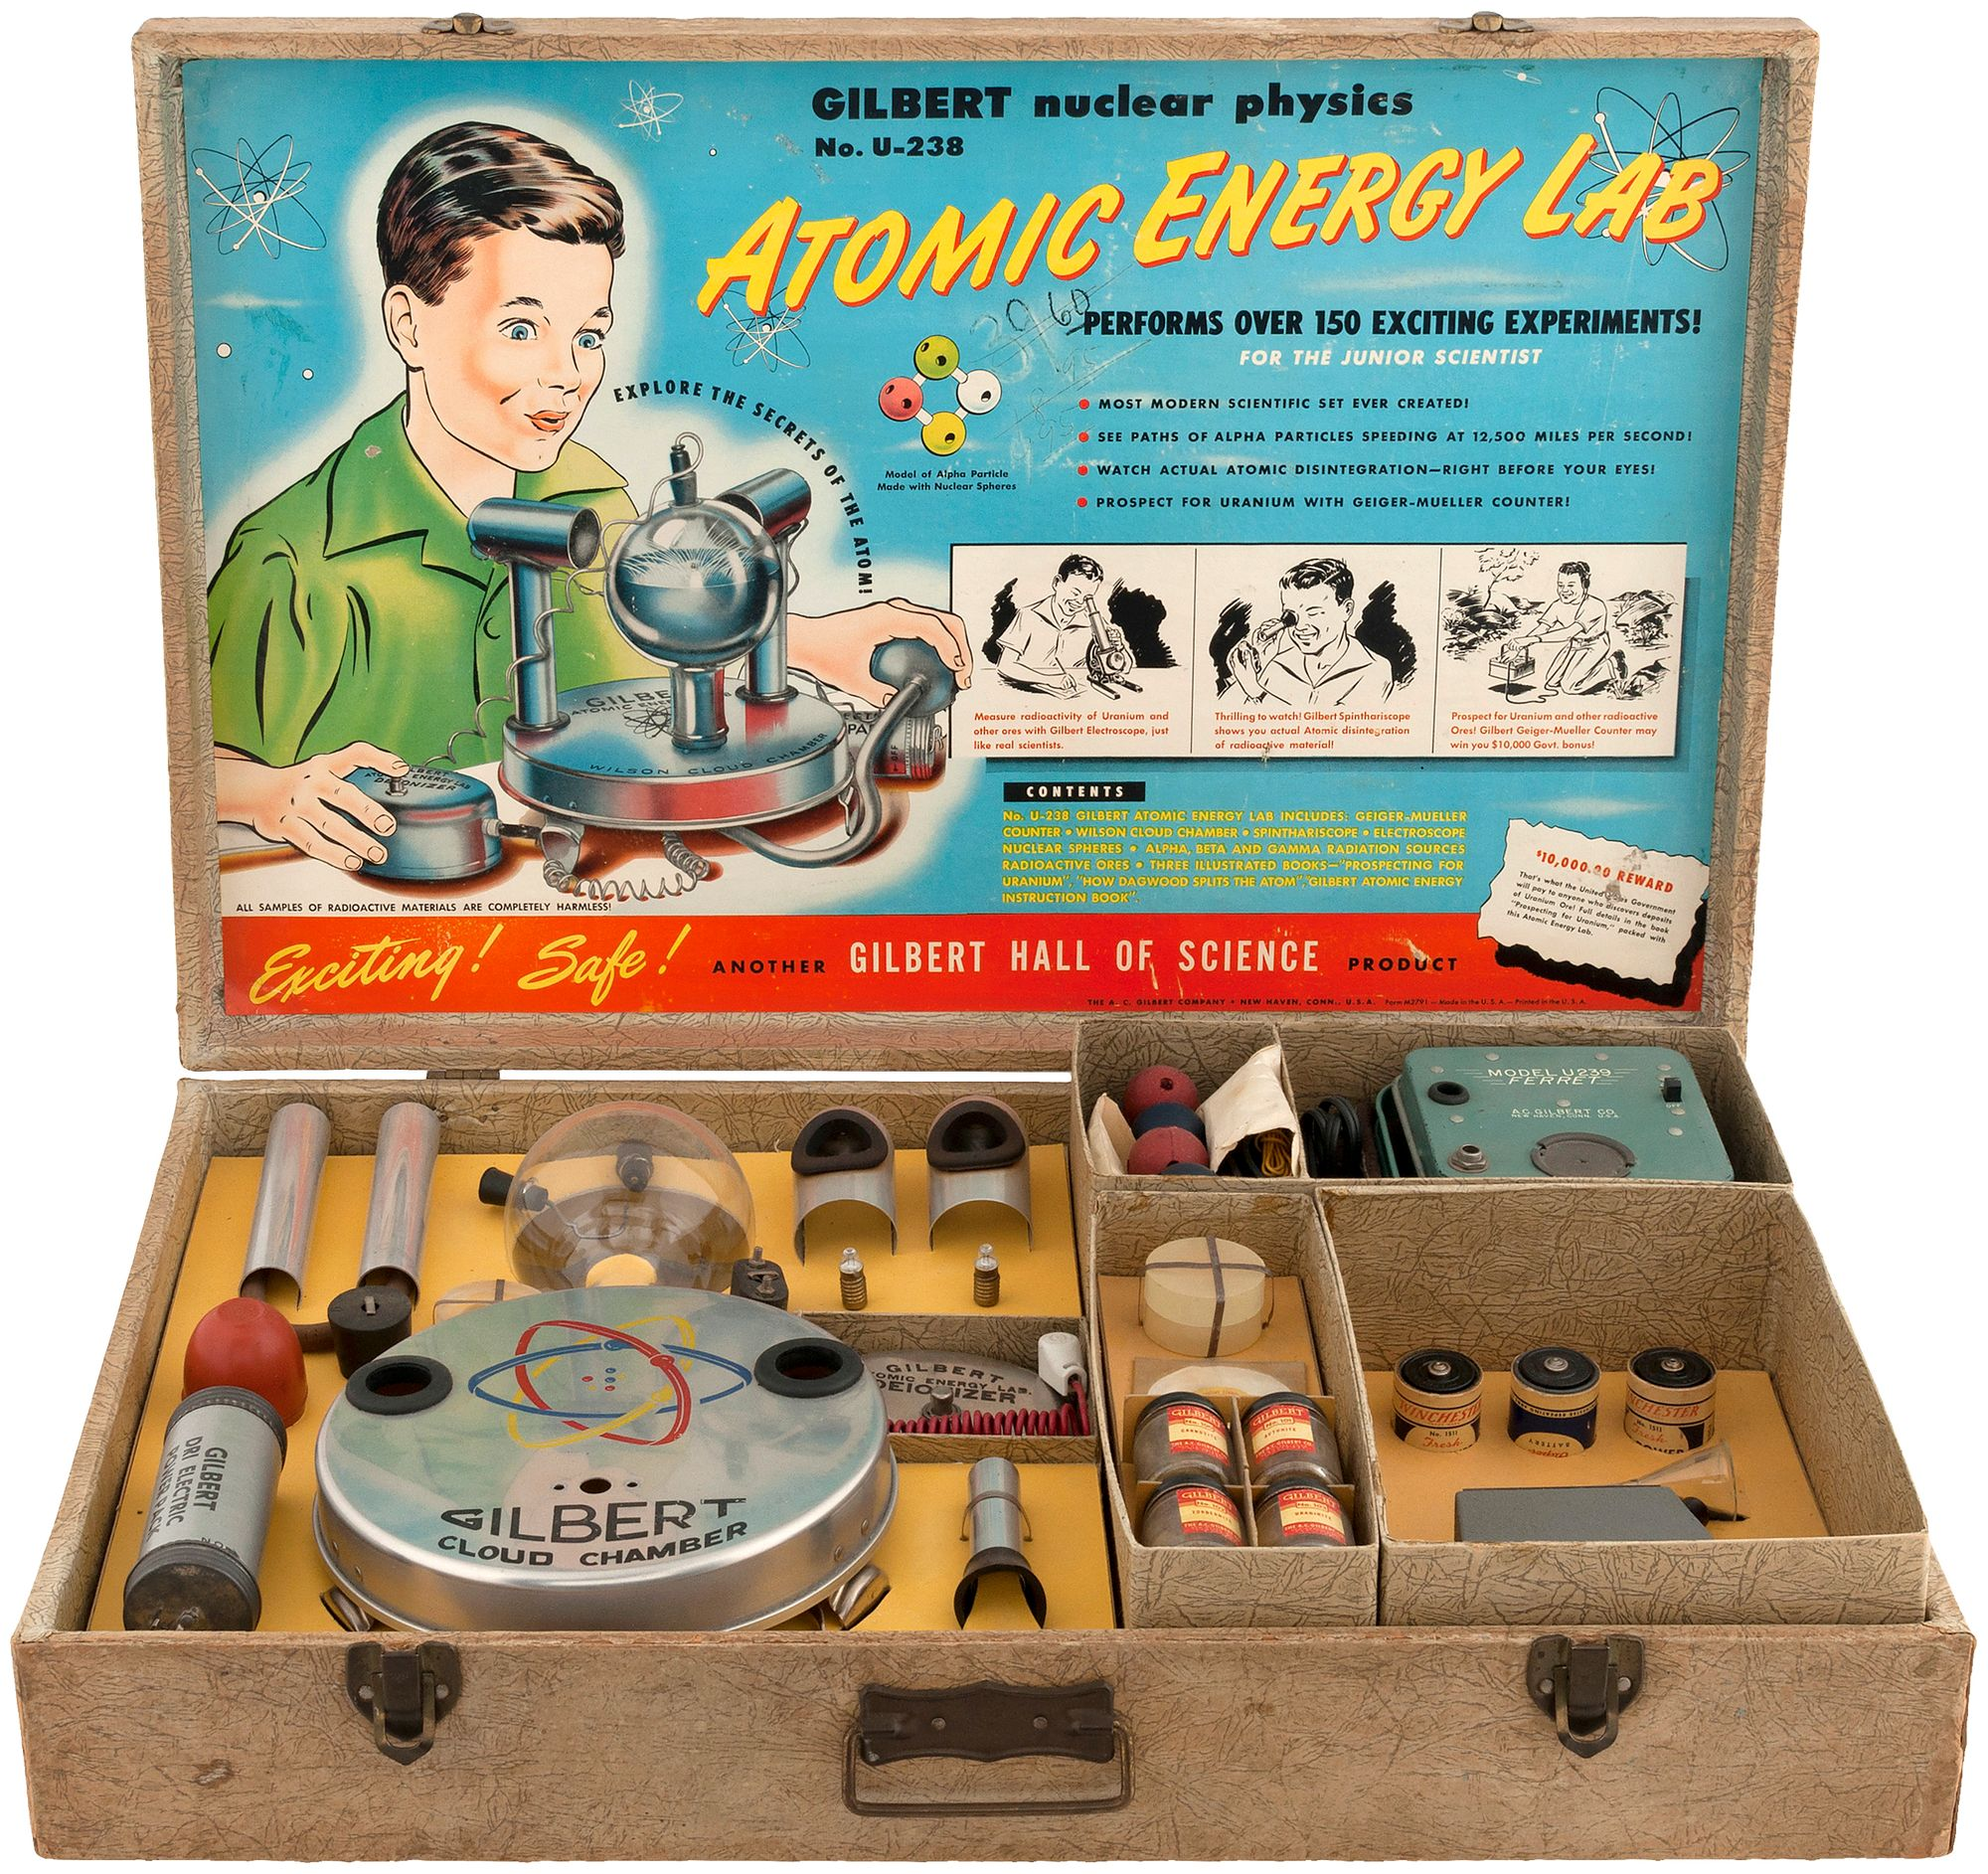 Gilbert Nuclear Physics Atomic Energy Lab toy